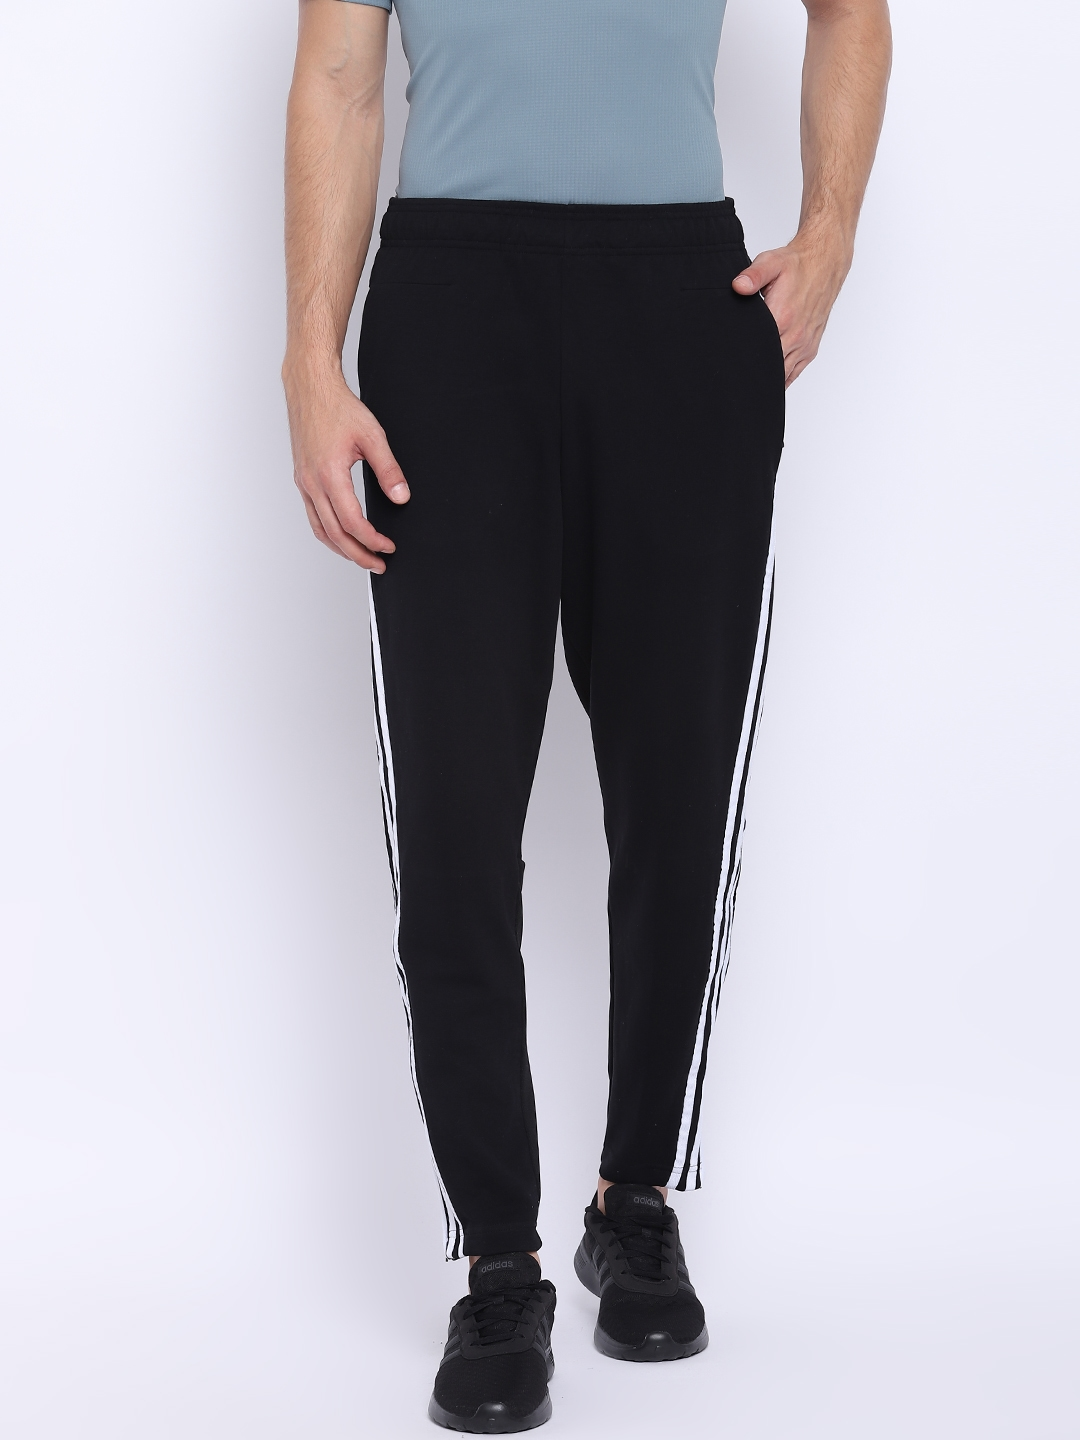 musicas Correlación Bajar  Buy ADIDAS Men Black M ID TIRO Class Track Pants - Track Pants for Men  7401162 | Myntra